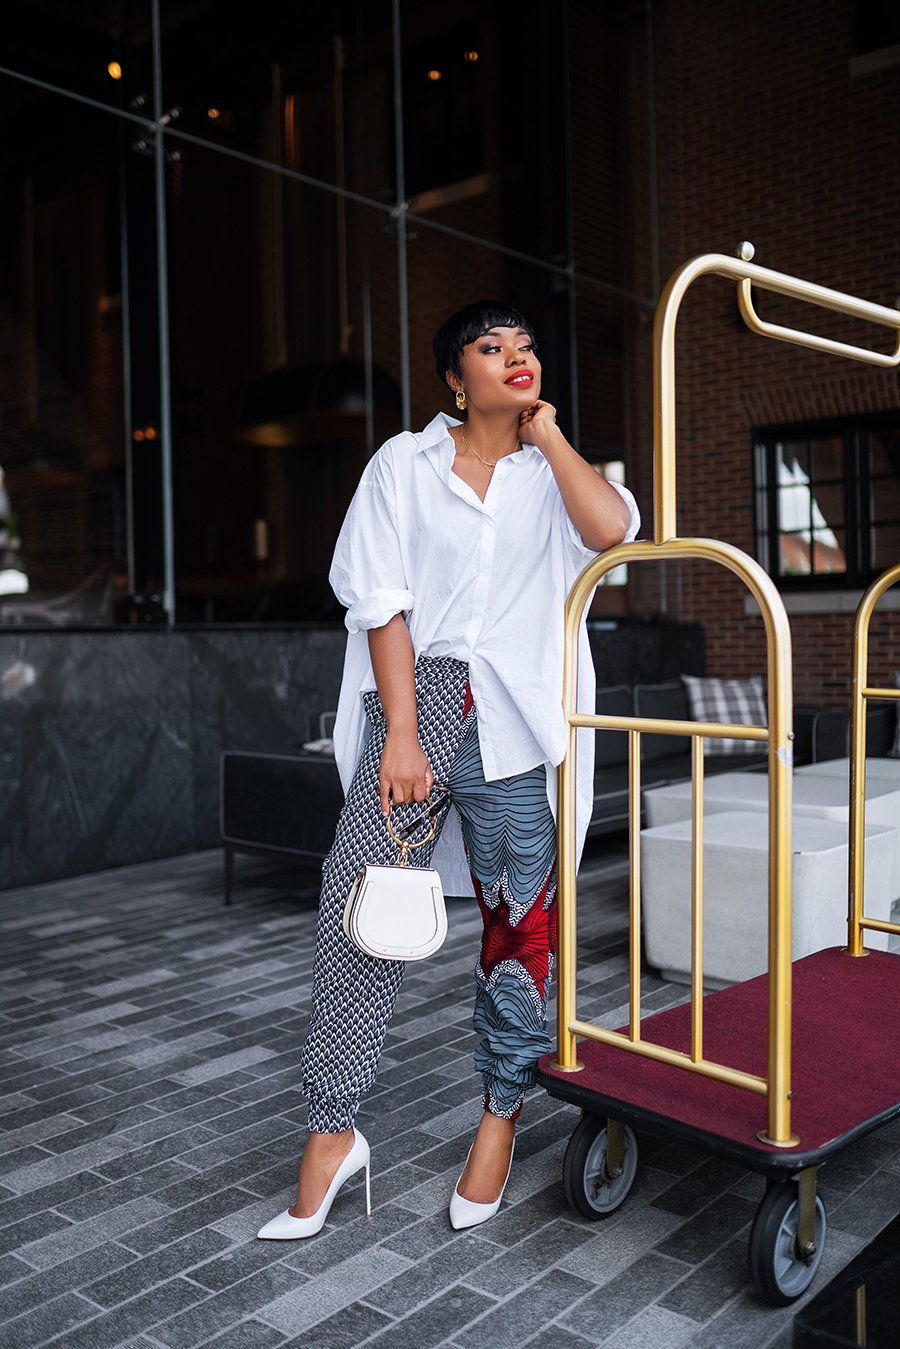 stella-adewunmi-of-jadore-fashion-blog-shares-comfortable-wfh-outfit